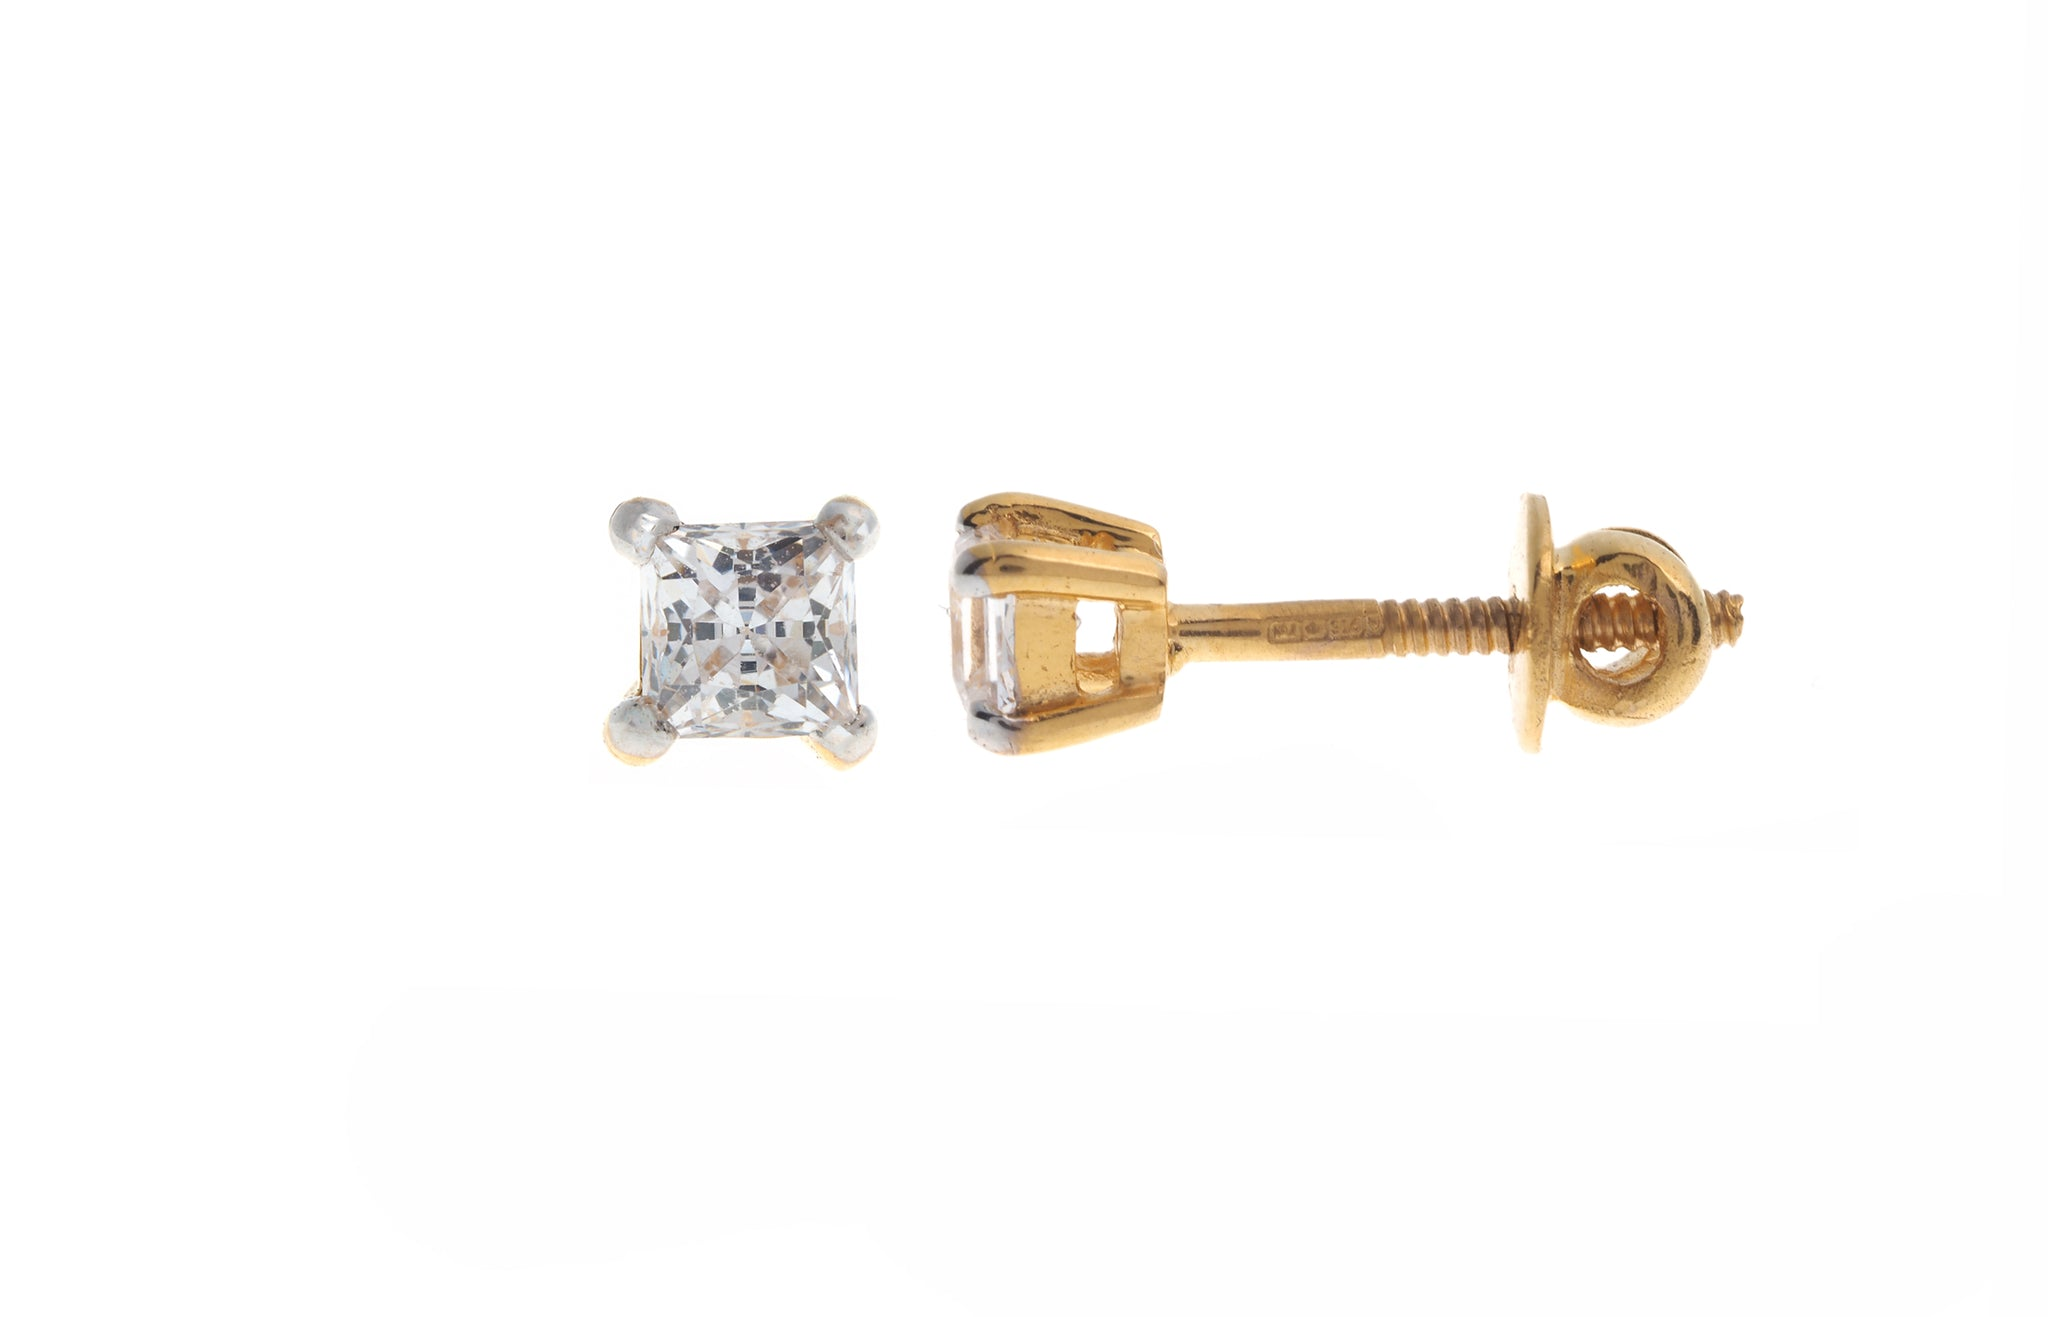 22ct Gold Stud Earrings set with a Swarovski Zirconia (1.57g) PR3MM